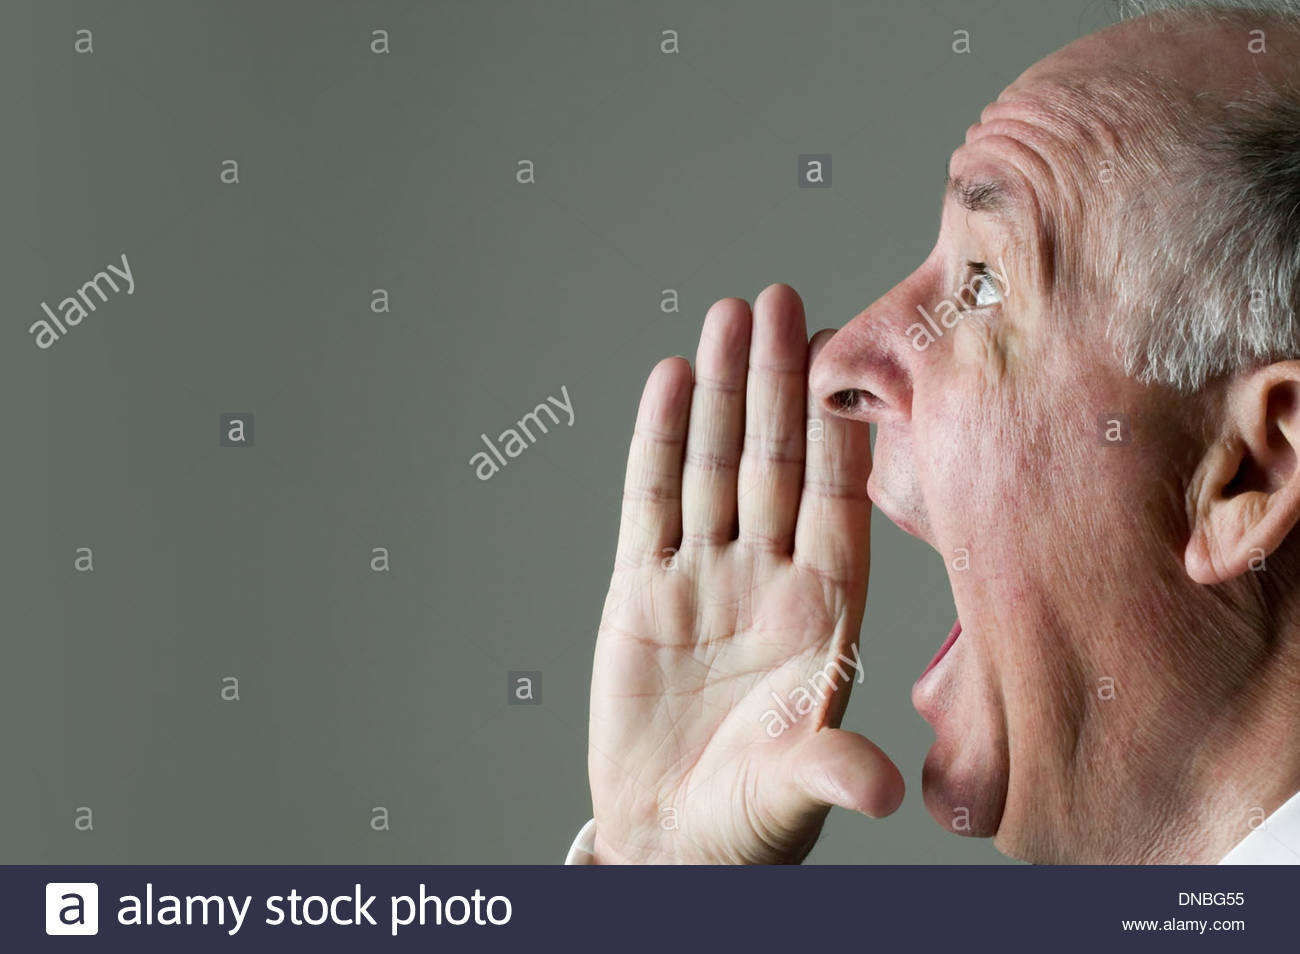 Senior man shouting with his hand to his mouth. - Stock Image